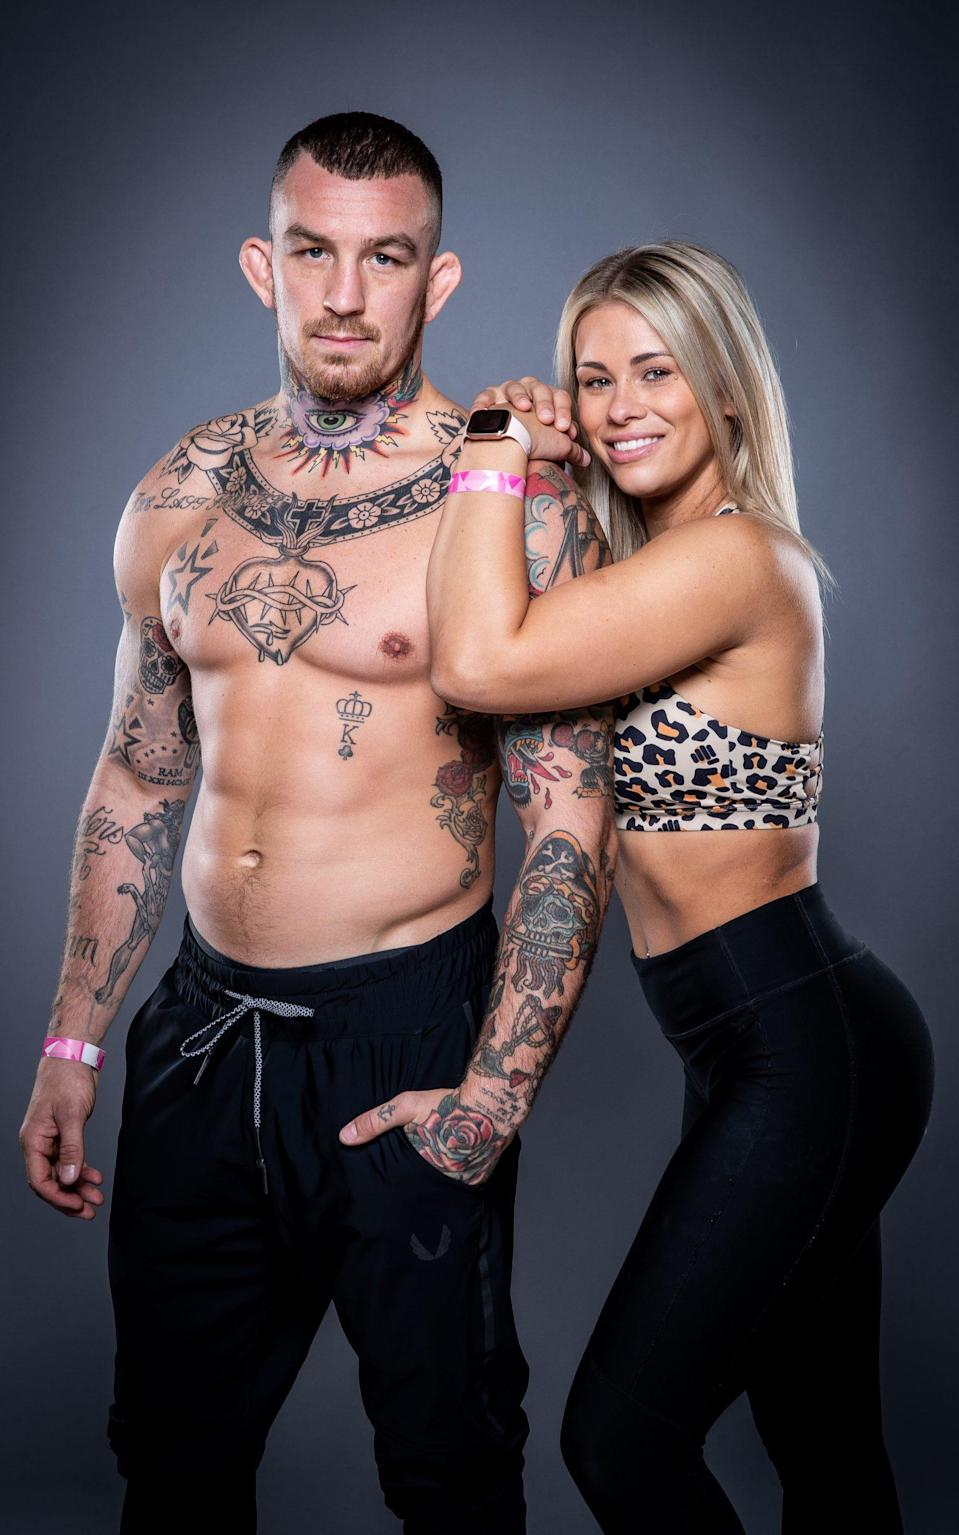 Husband and wife MMA fighters Austin Vanderford and Paige VanZant - Lucas Noonan/Bellator